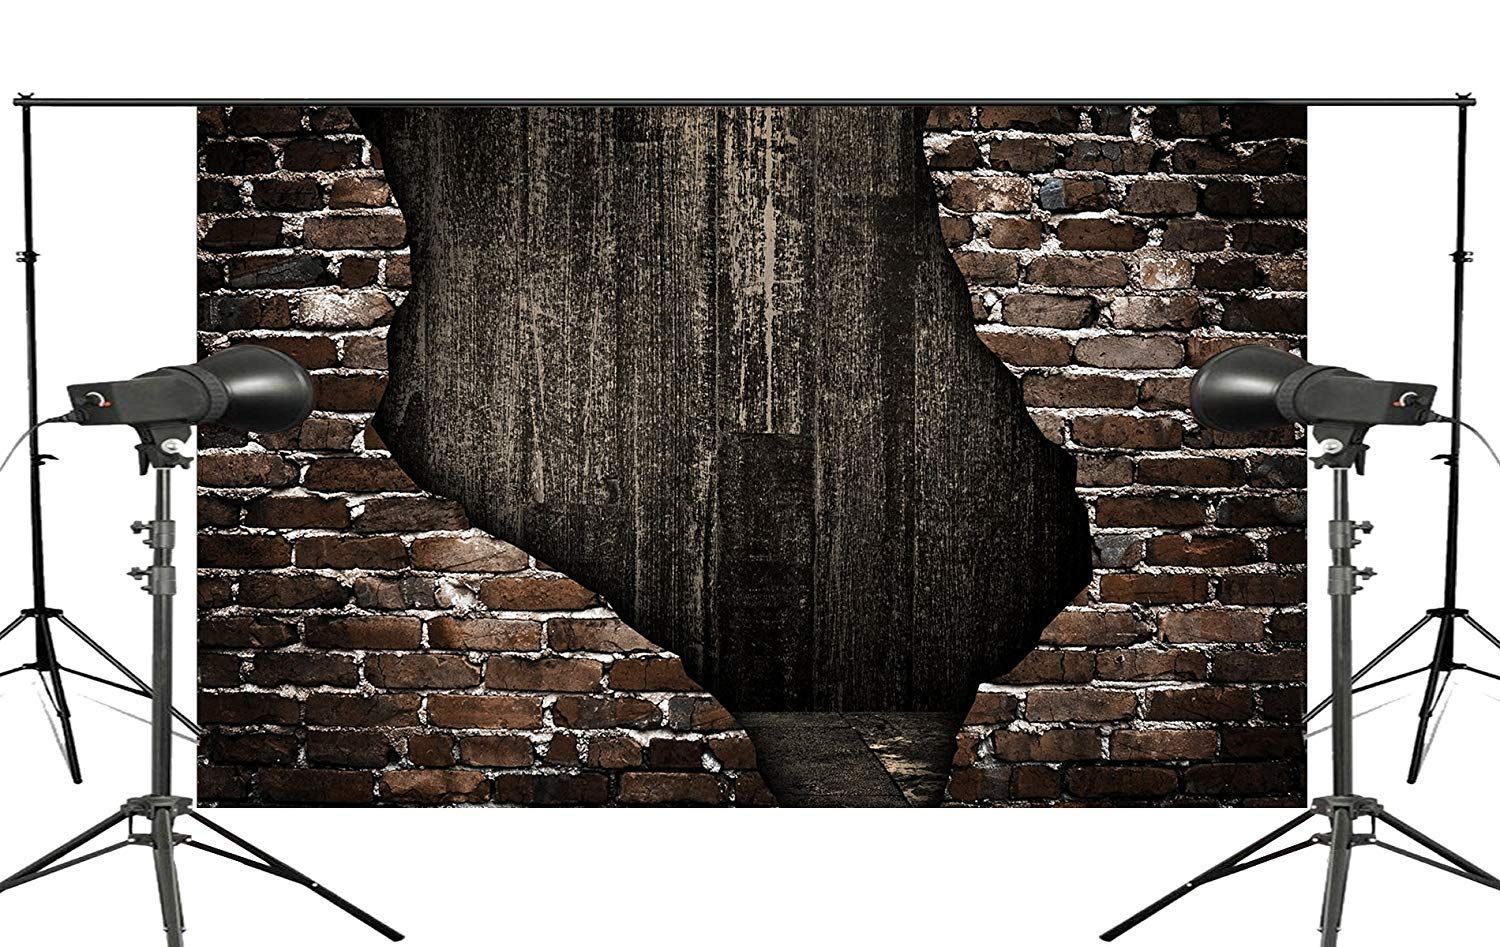 ERTIANANG Cracked Old Brick Wall Photo Background Children Photo Studio Retro Photography Backdrops Wood Floor 5x7ft